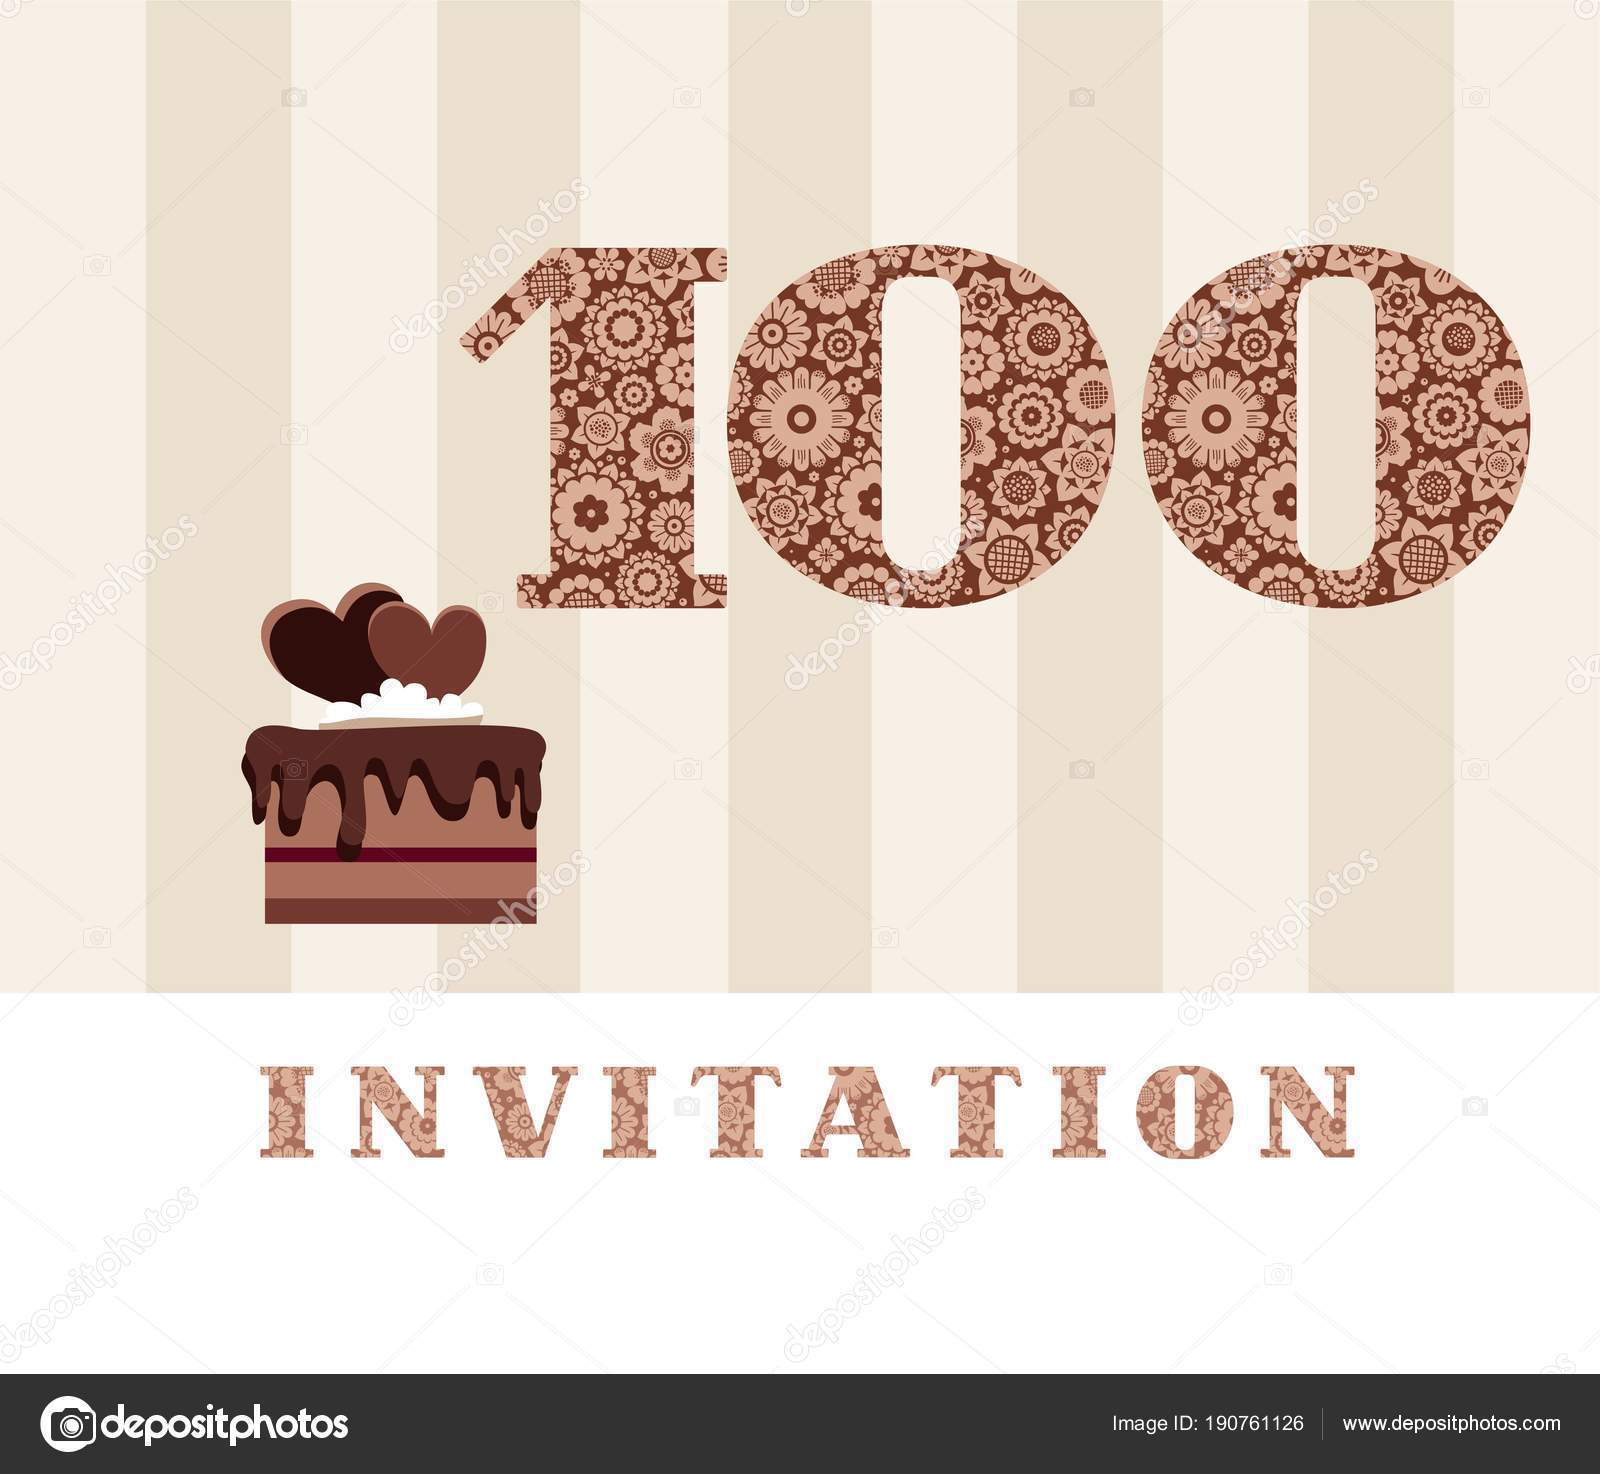 Invitation 100 Years Old Chocolate Cake Heart Vector The To Birthday Party Color Card With Hearts English